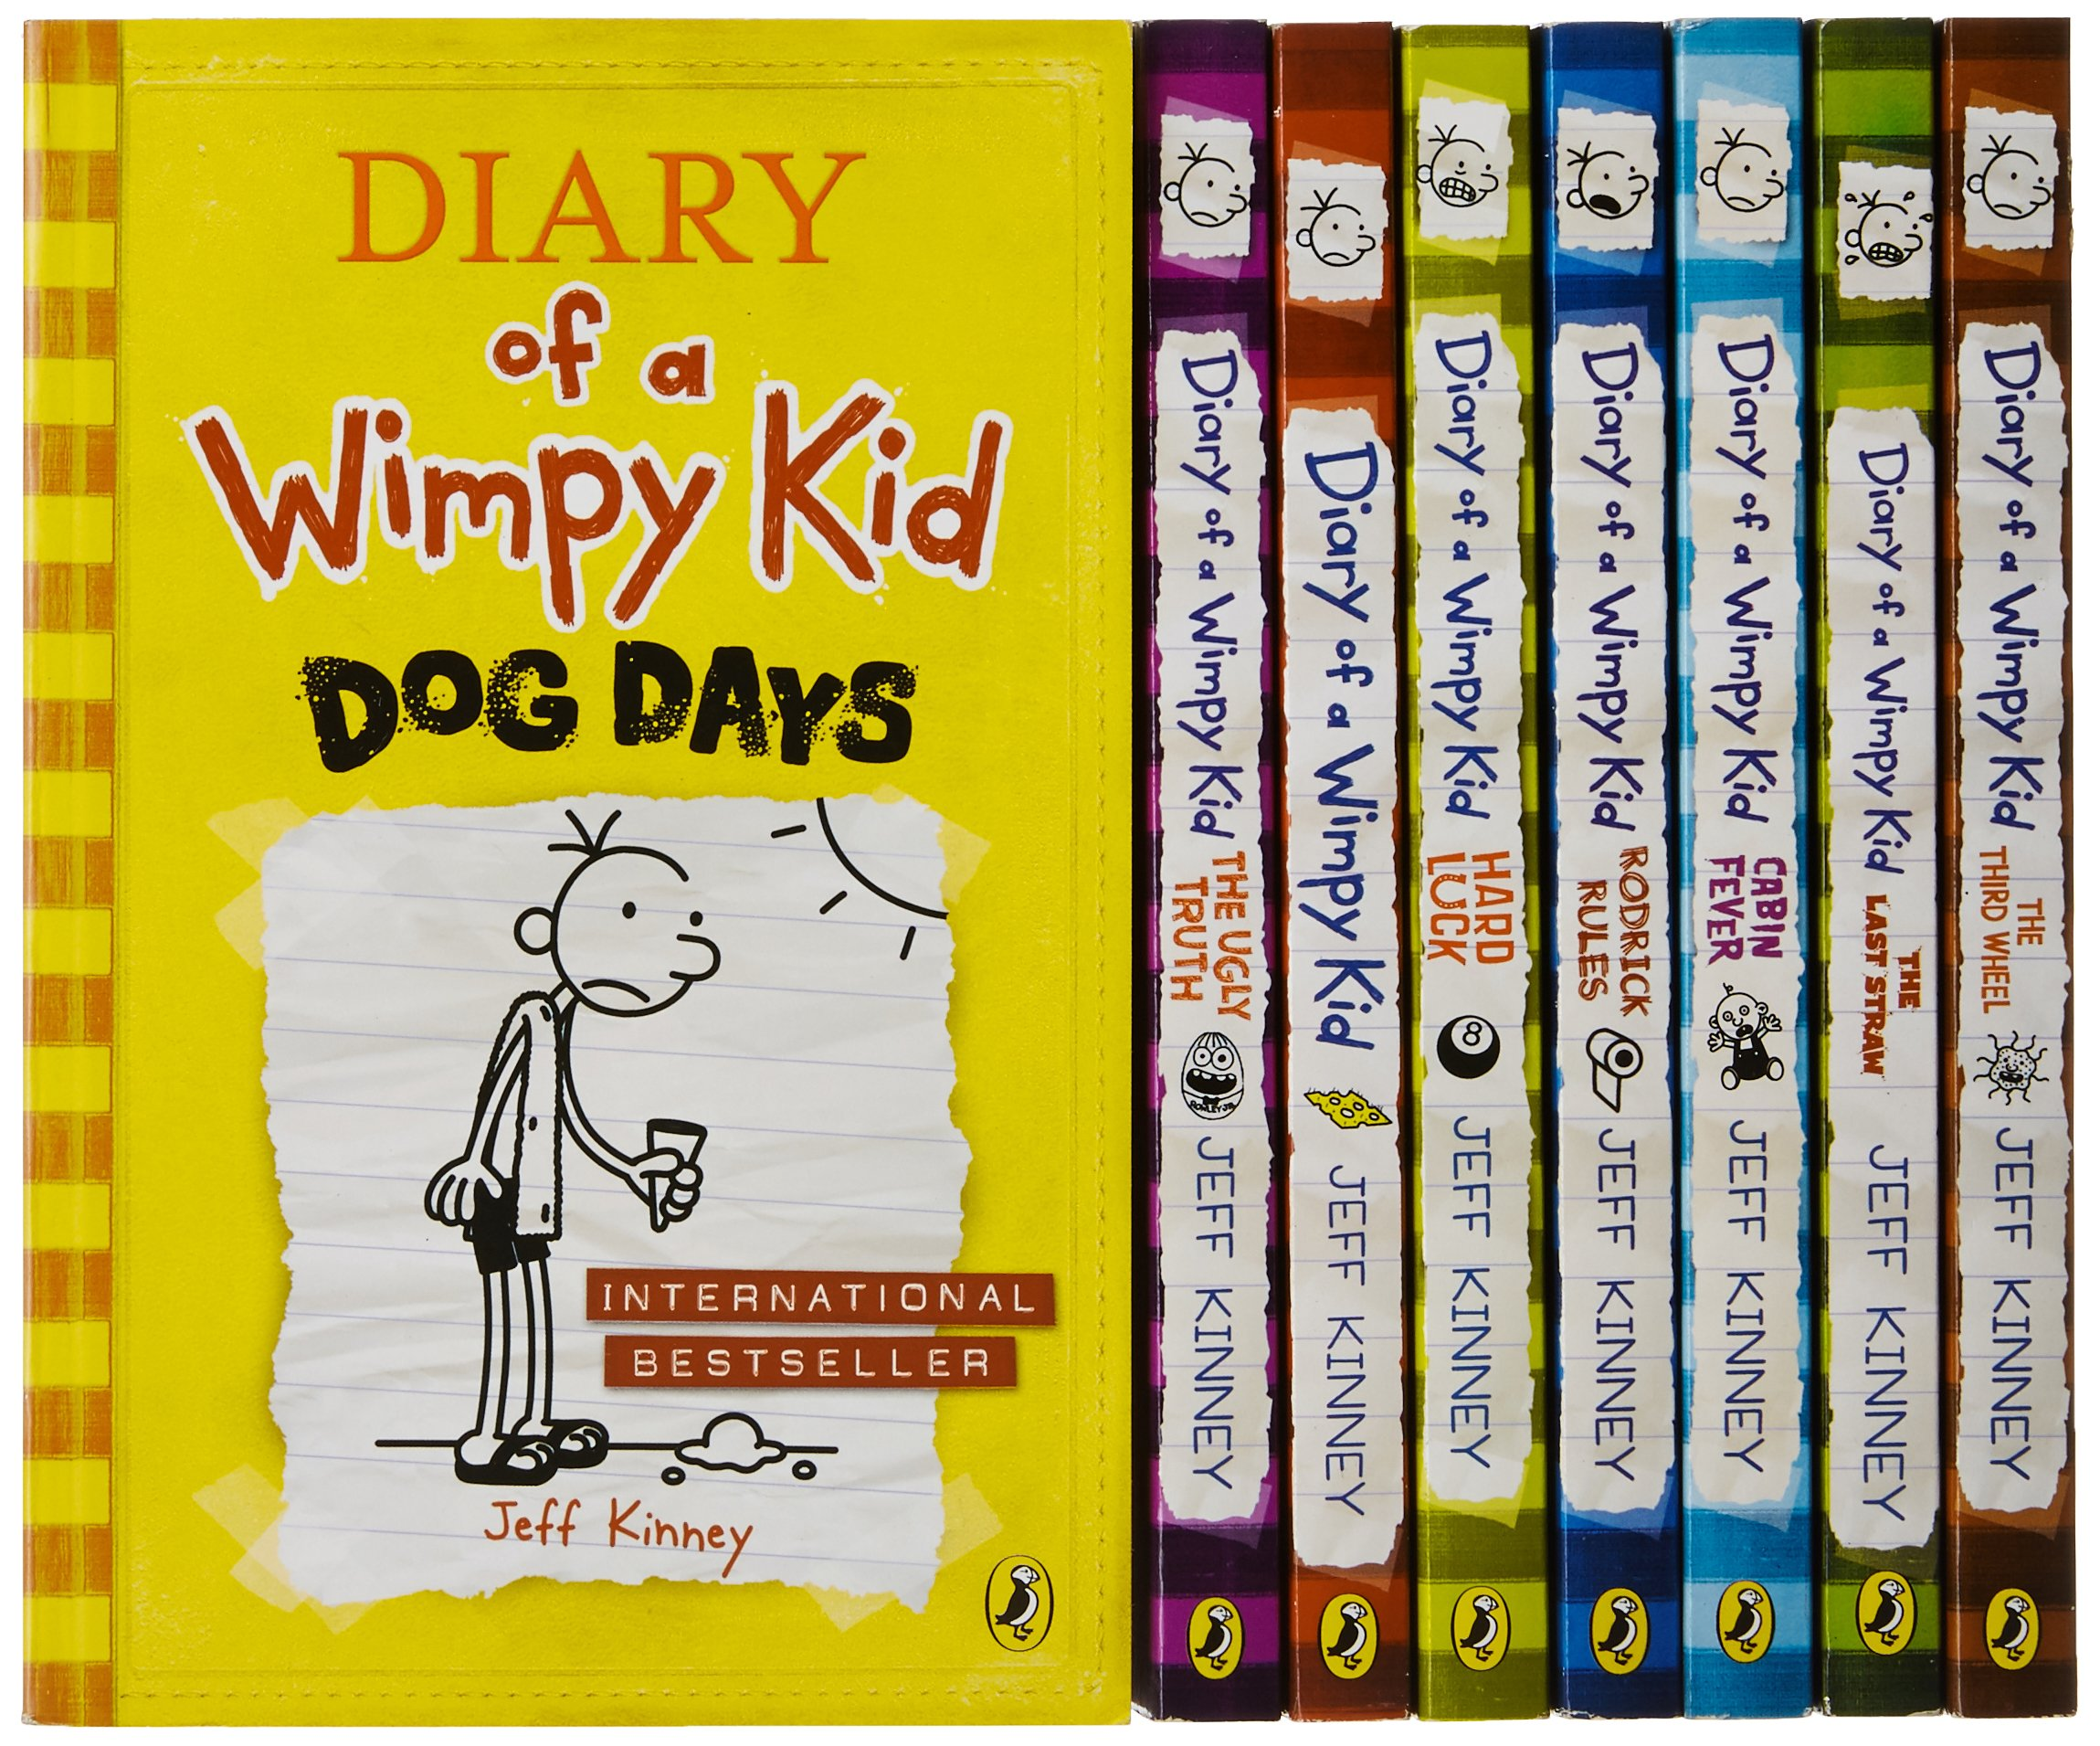 Diary of a wimpy kid box of books 1 8 the do it yourself book diary of a wimpy kid box of books 1 8 the do it yourself book jeff kinney 9781419715389 amazon books solutioingenieria Gallery